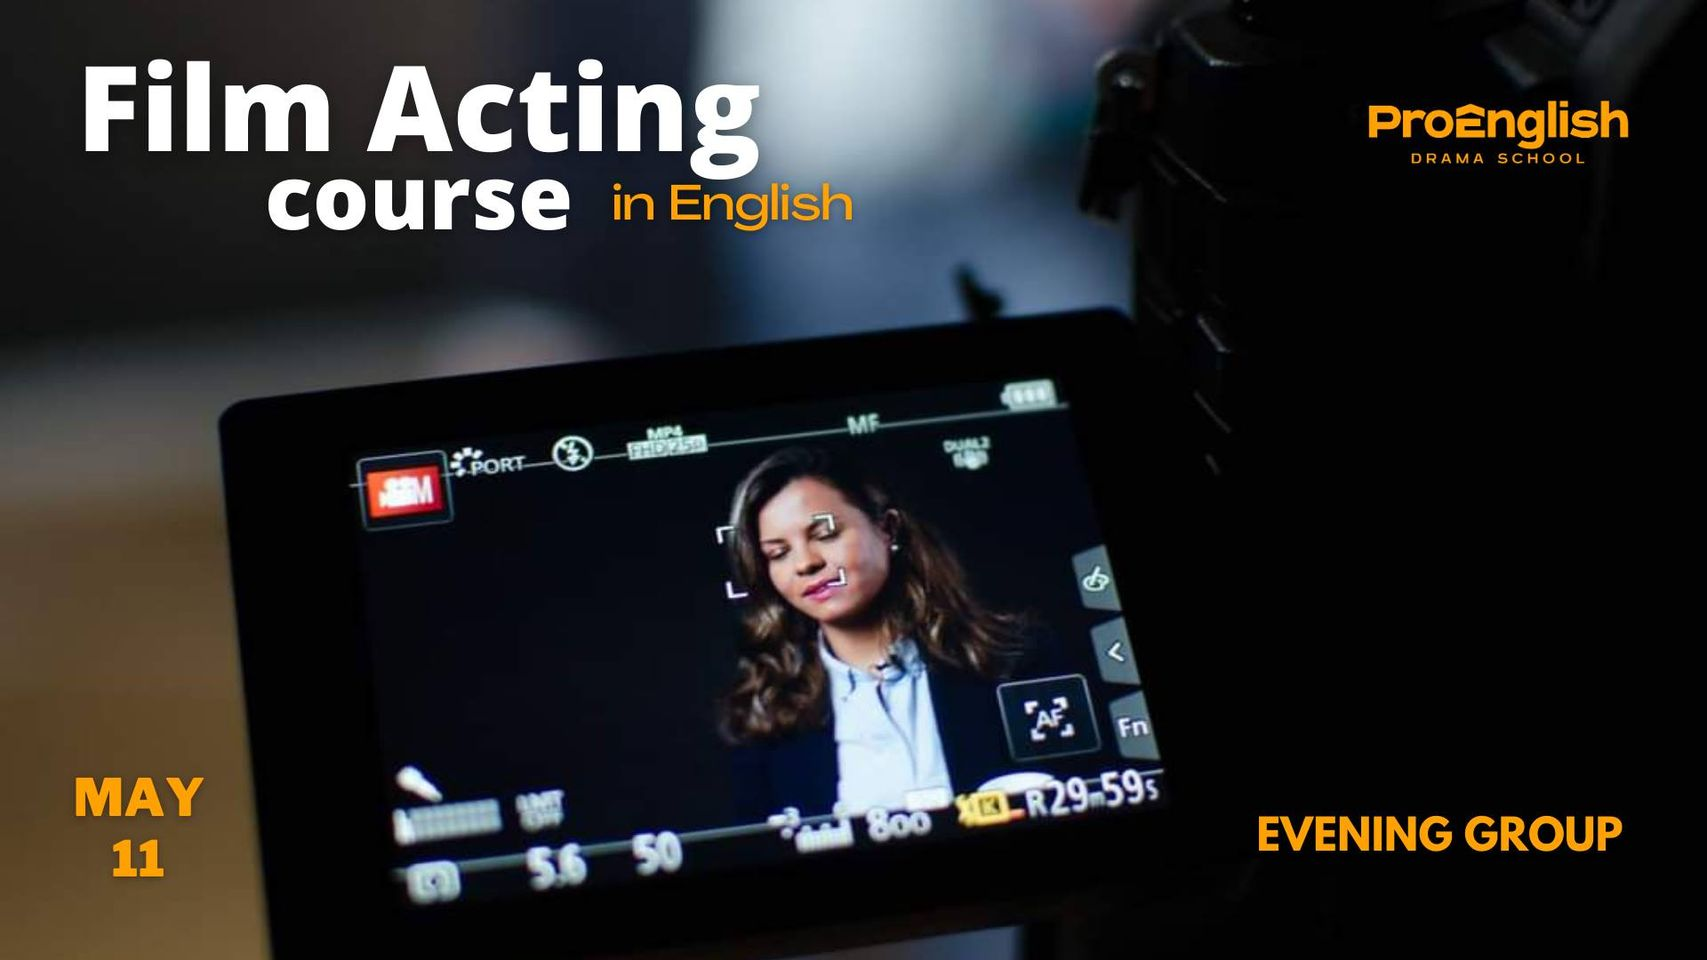 news - 11.05.2021 – Film Acting Course in English|Evening course